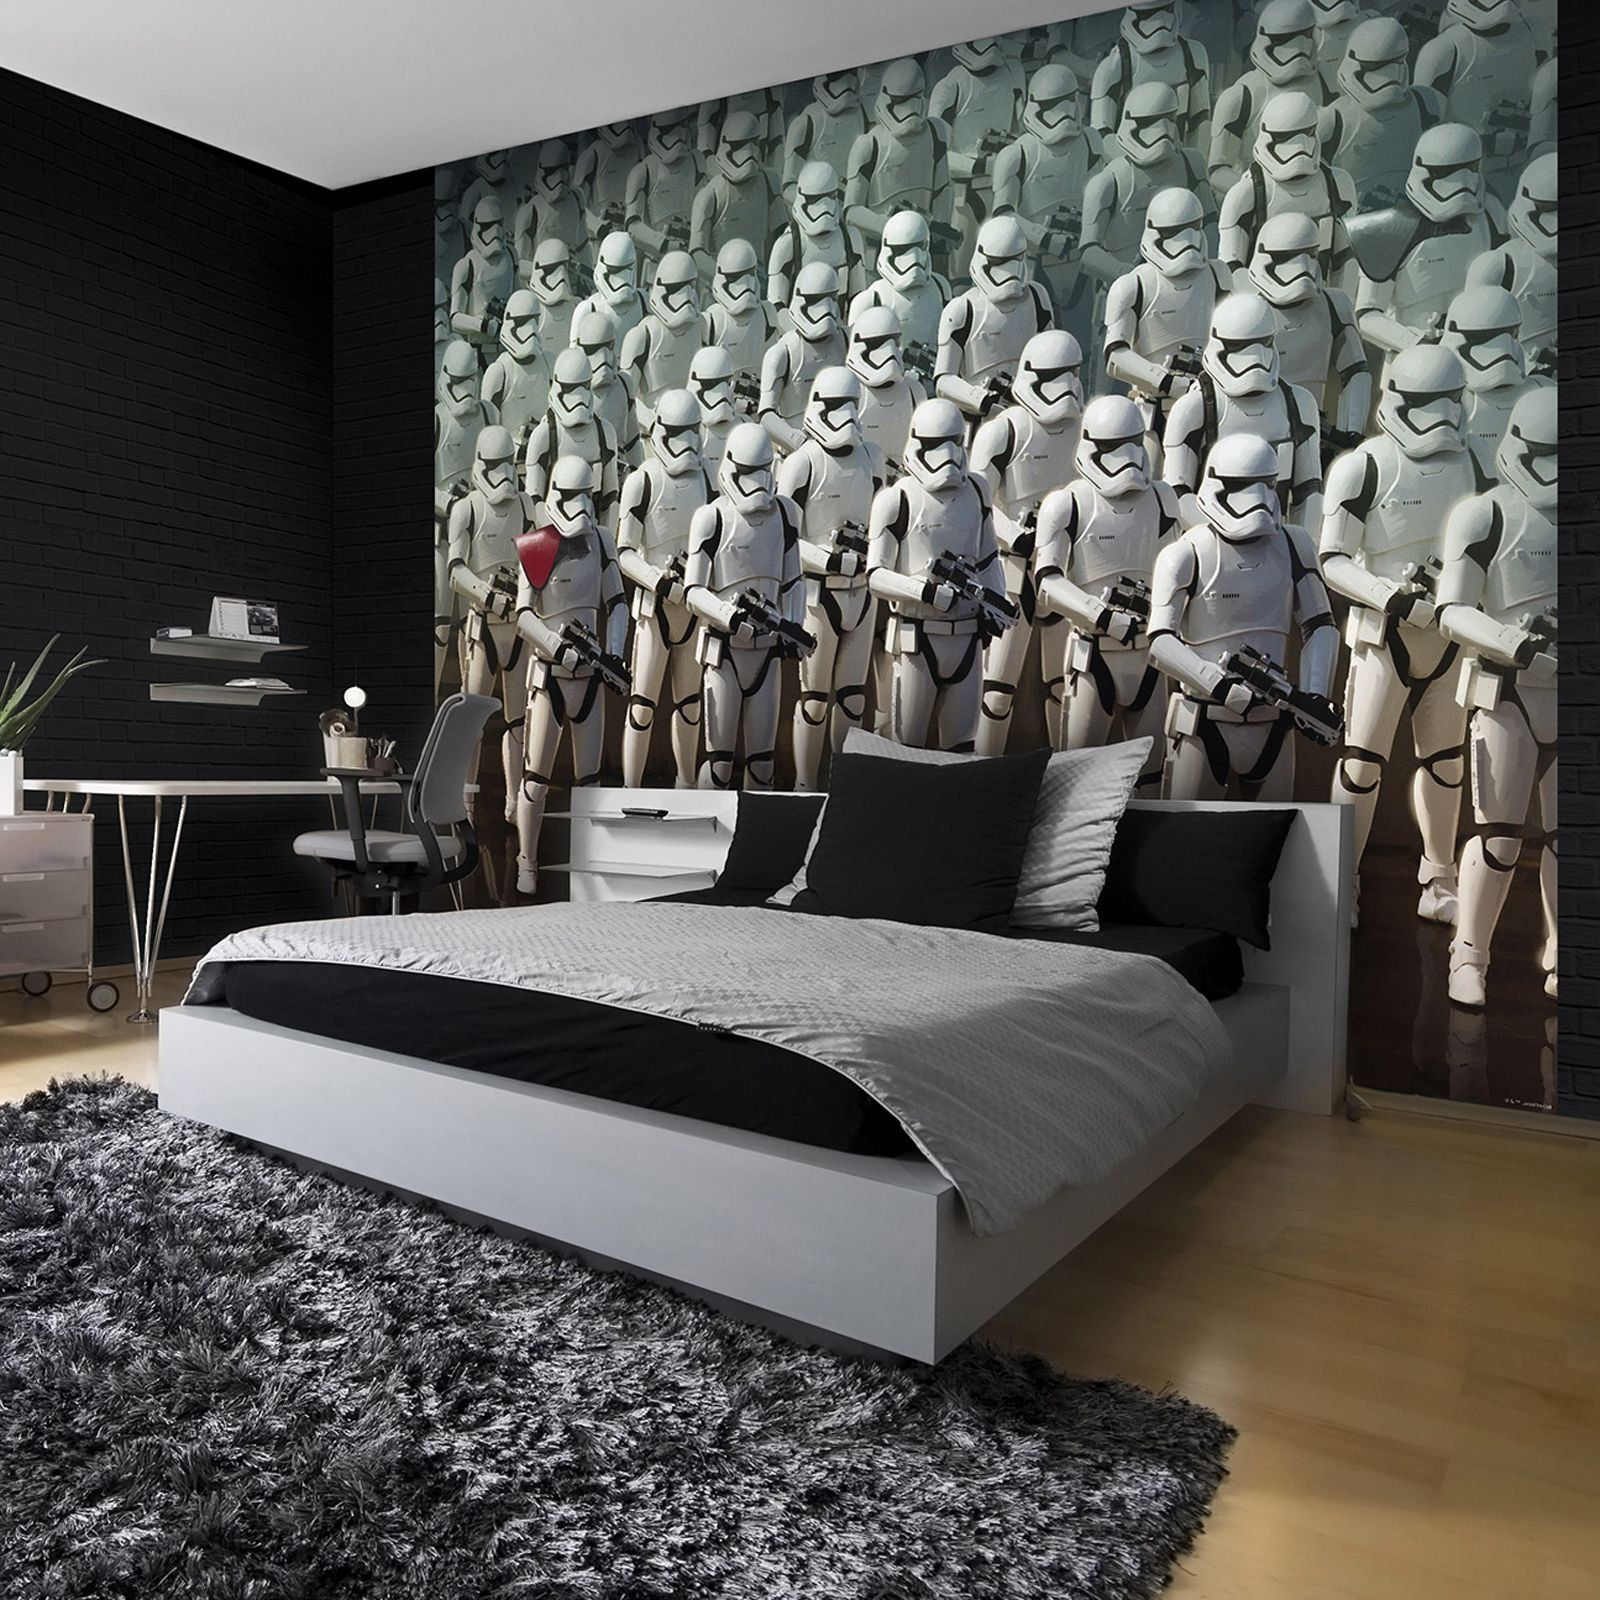 Star Wars Stormtrooper Wall Mural   Dream Bedroom U2026